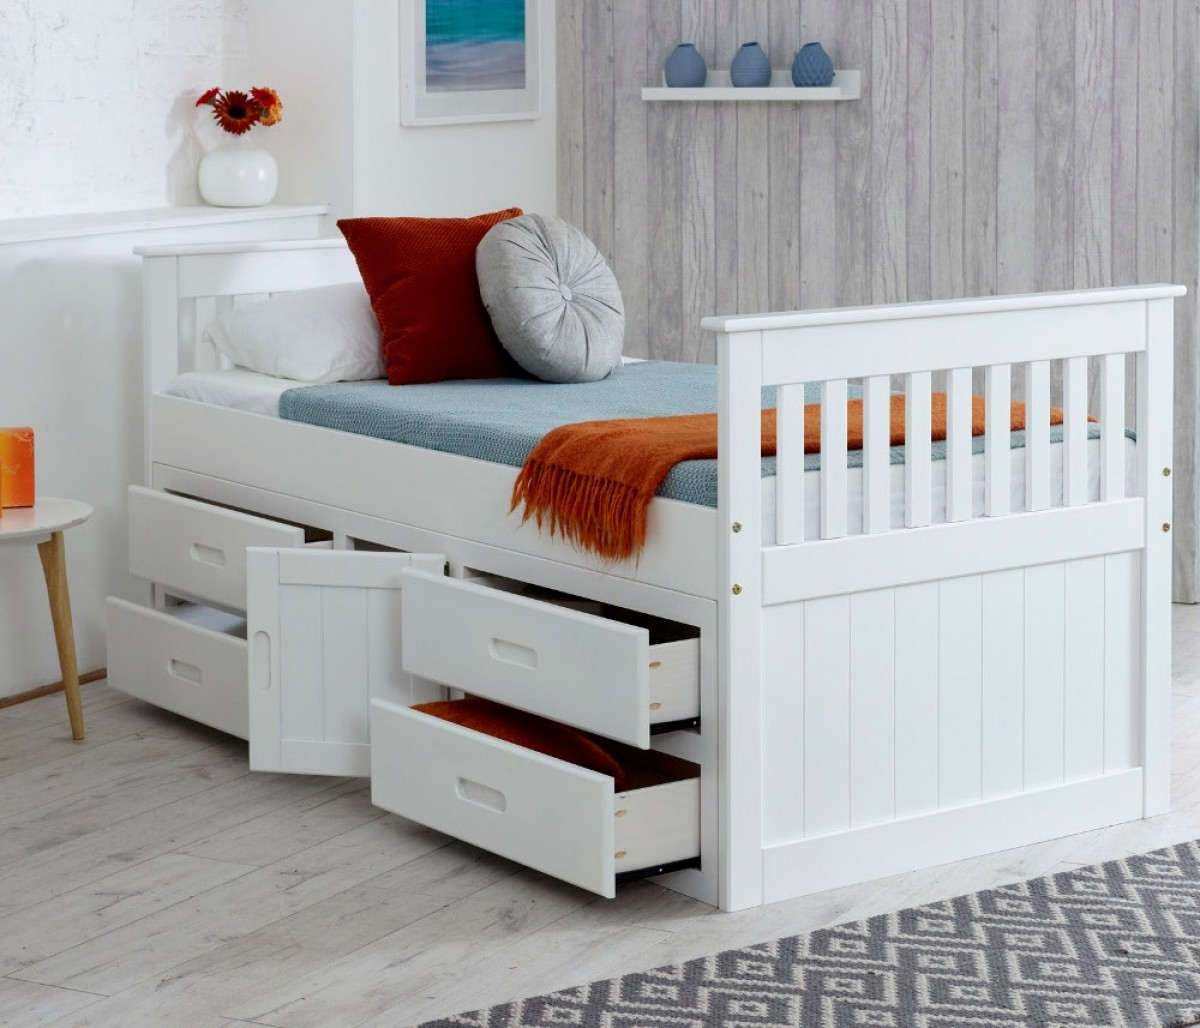 Captains White Wooden Storage Bed